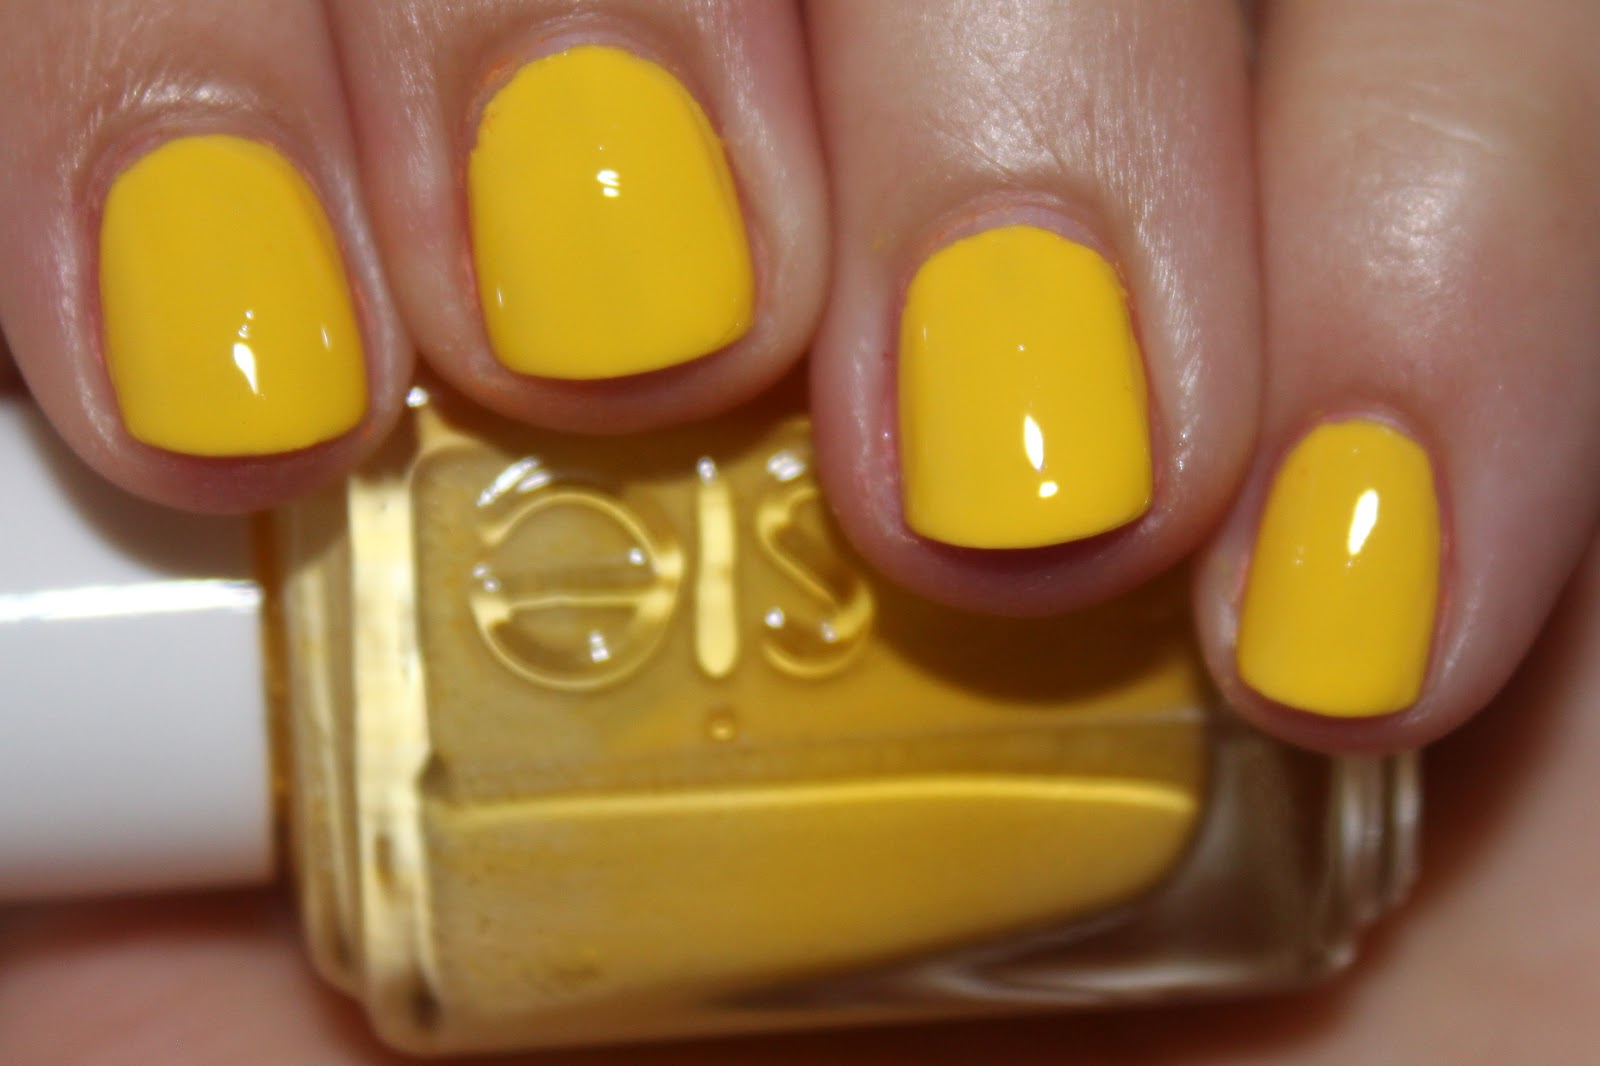 Nubbin Nails: Essie Shorty Pants